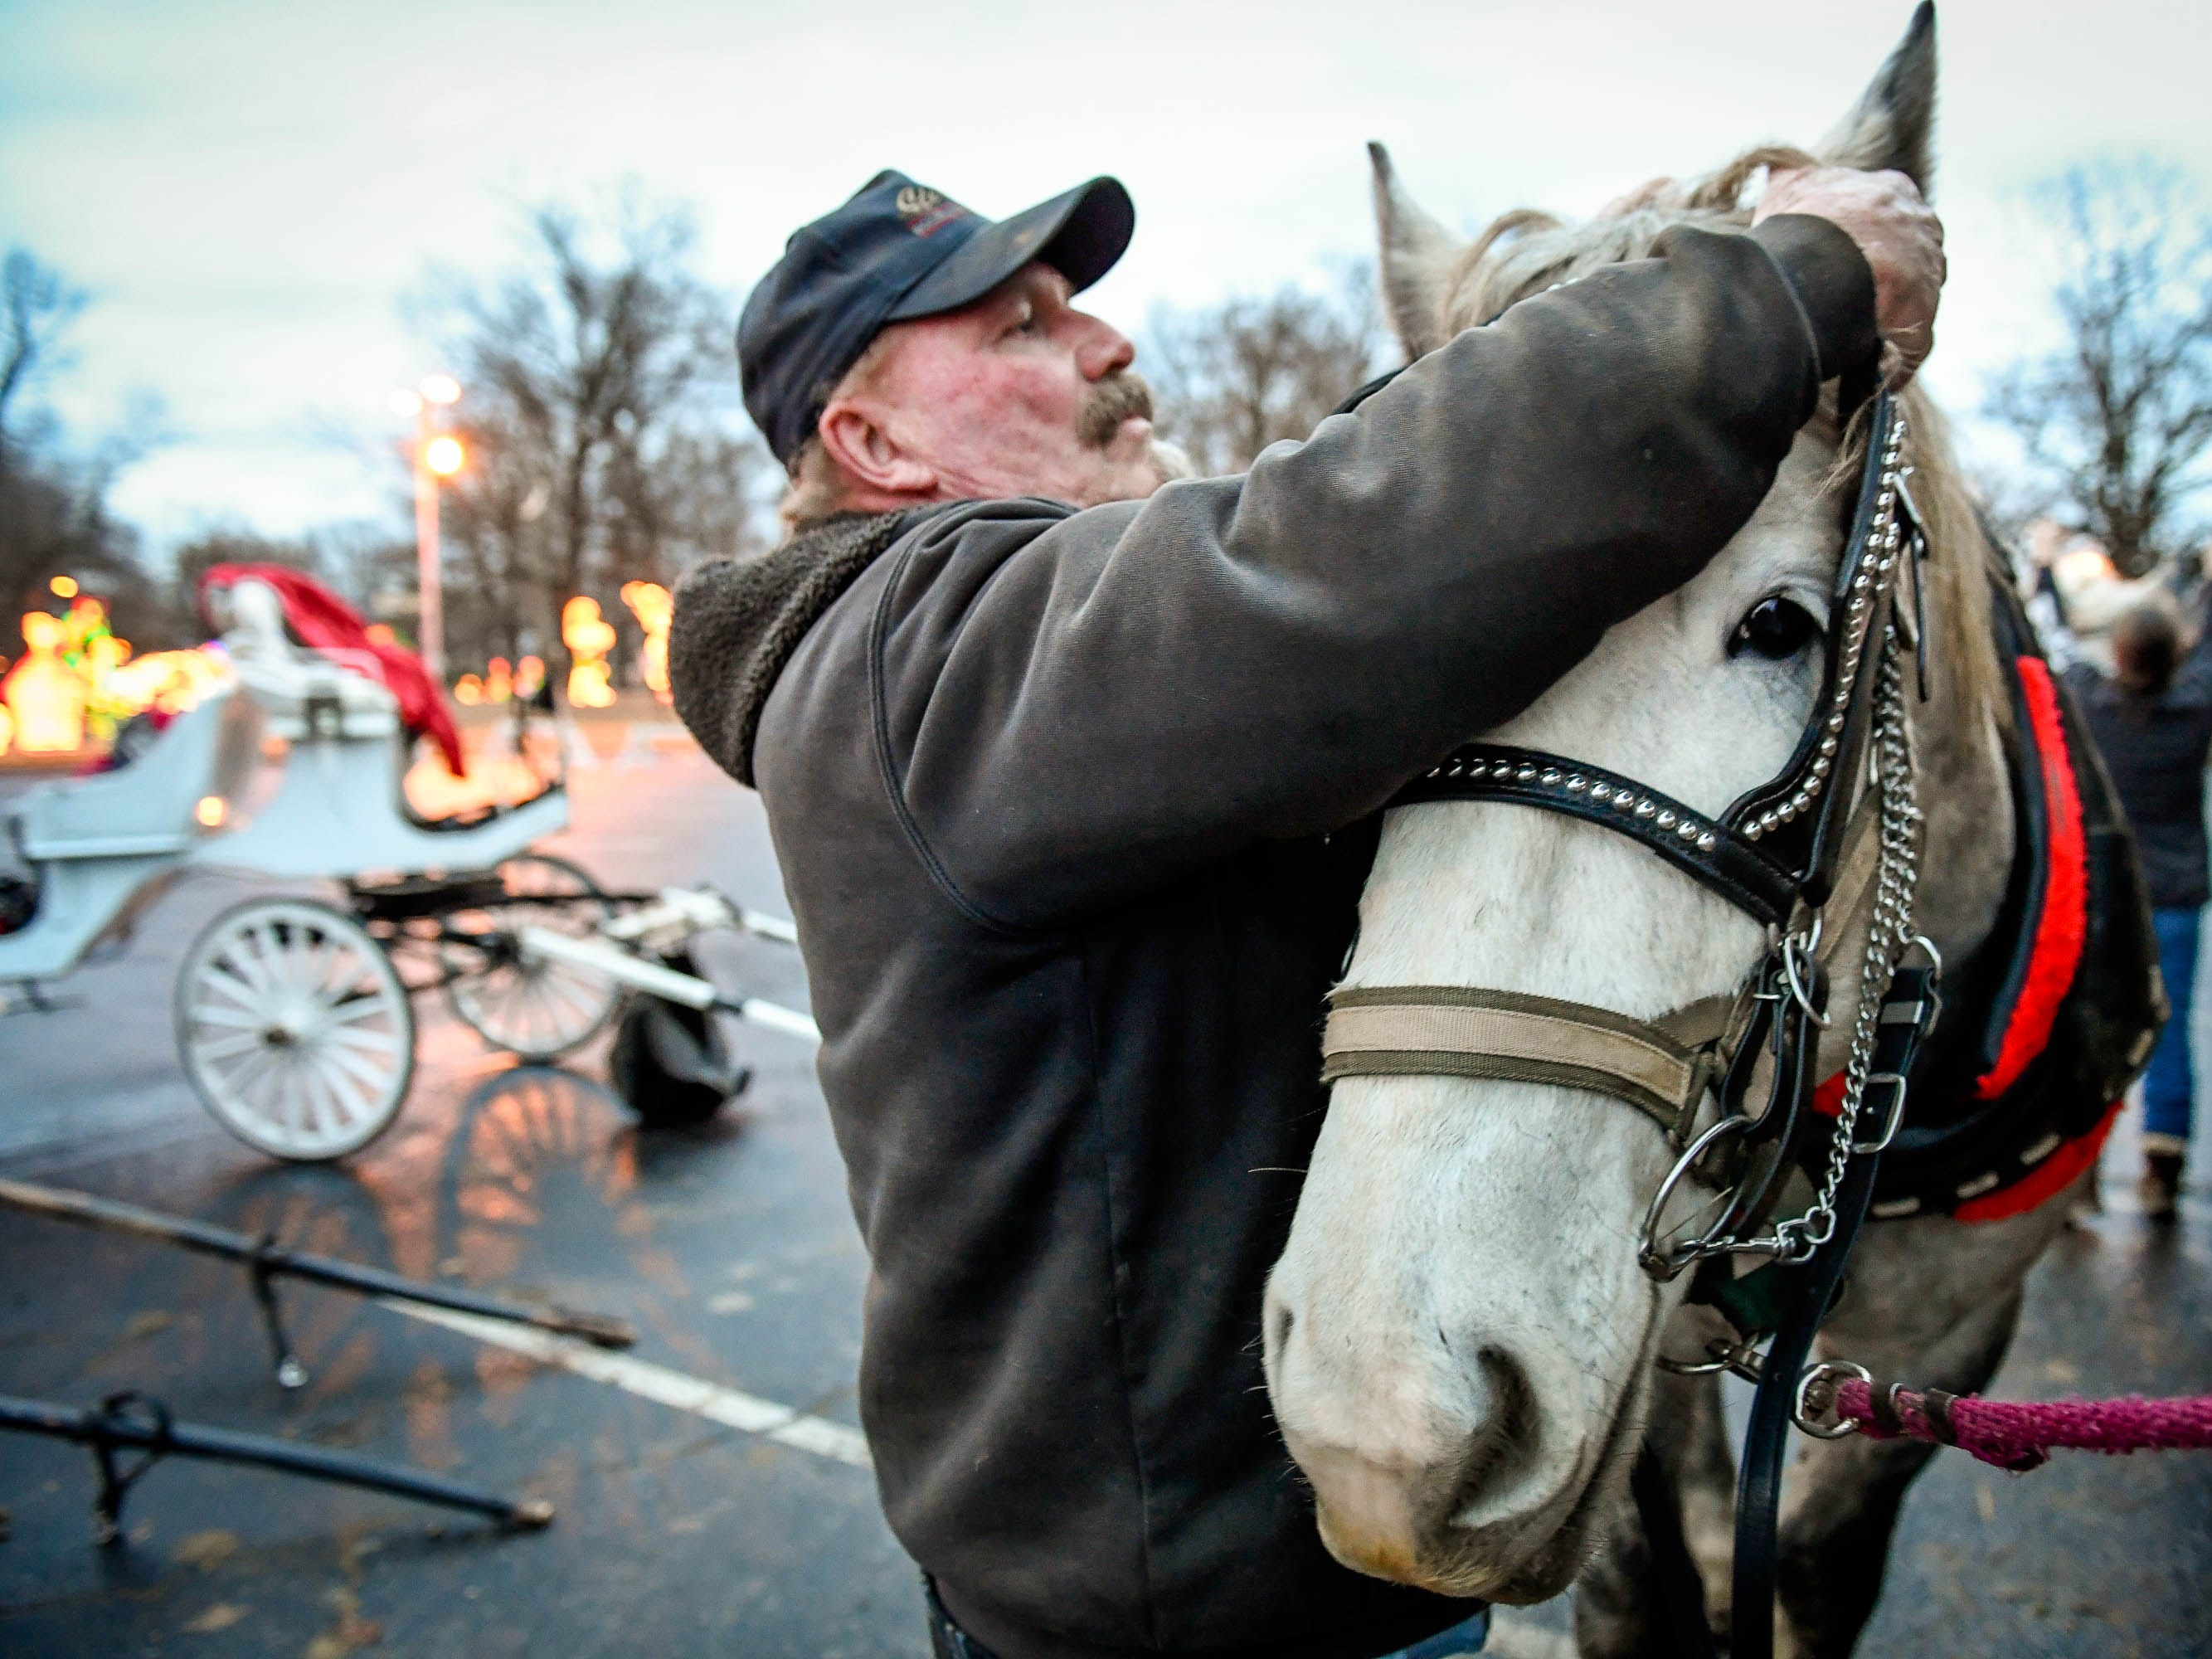 Randy O'Risky puts a harness on Chuck, one of the horses the Horseshoe Bend Carriage Company uses for carriage rides through the Ritzy's Fantasy of Lights in Garvin Park Tuesday, December 18, 2018.